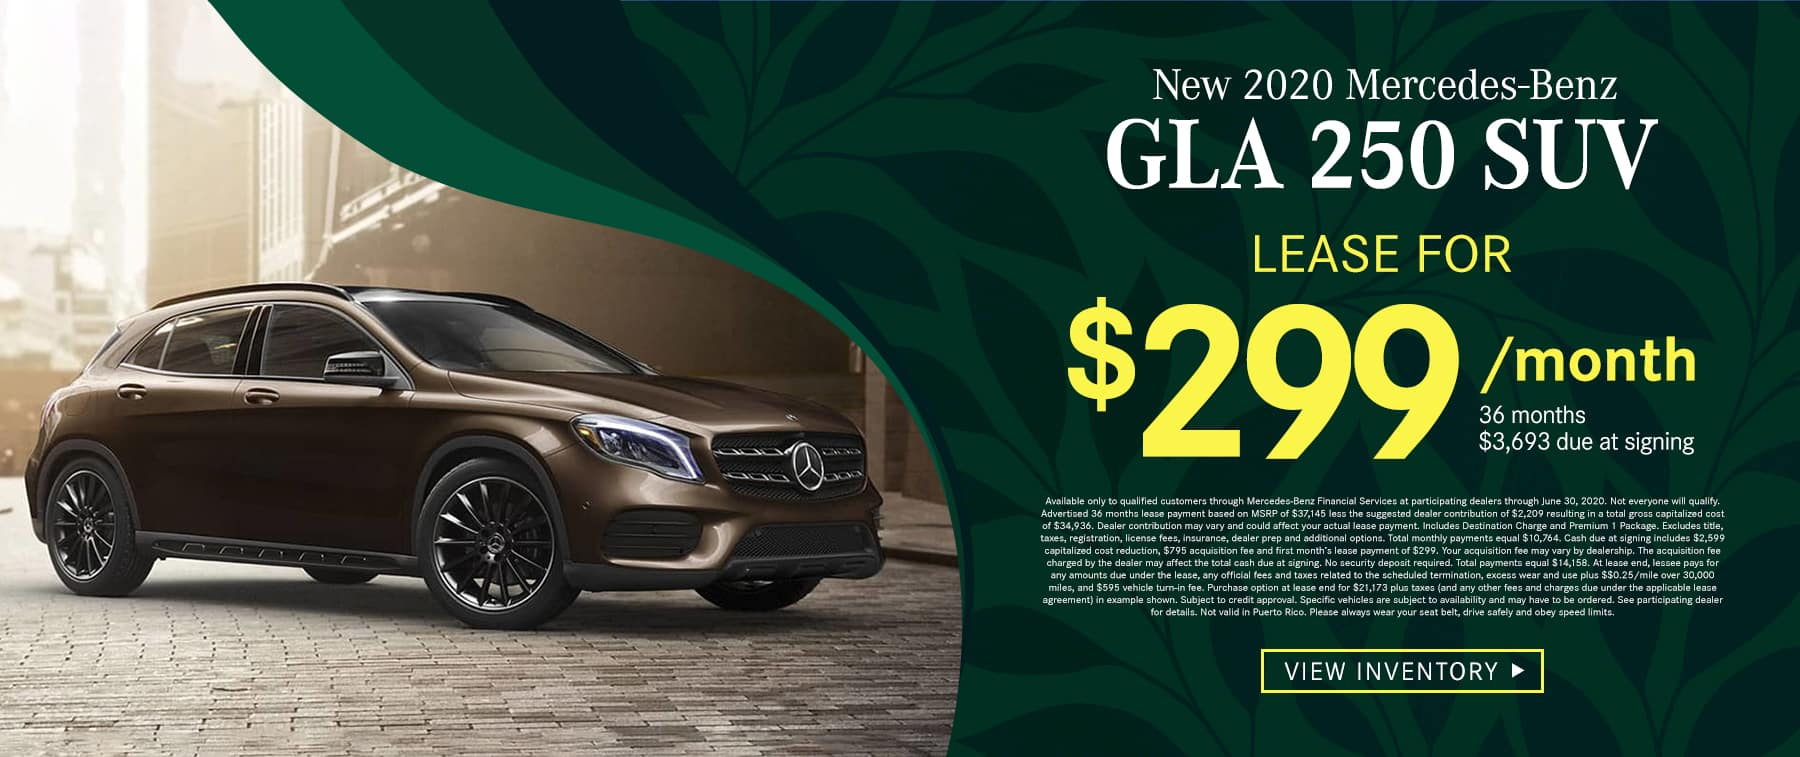 2020 GLA 250 SUV $299 Per Month 36 Months/10k Miles $3693 Due at signing